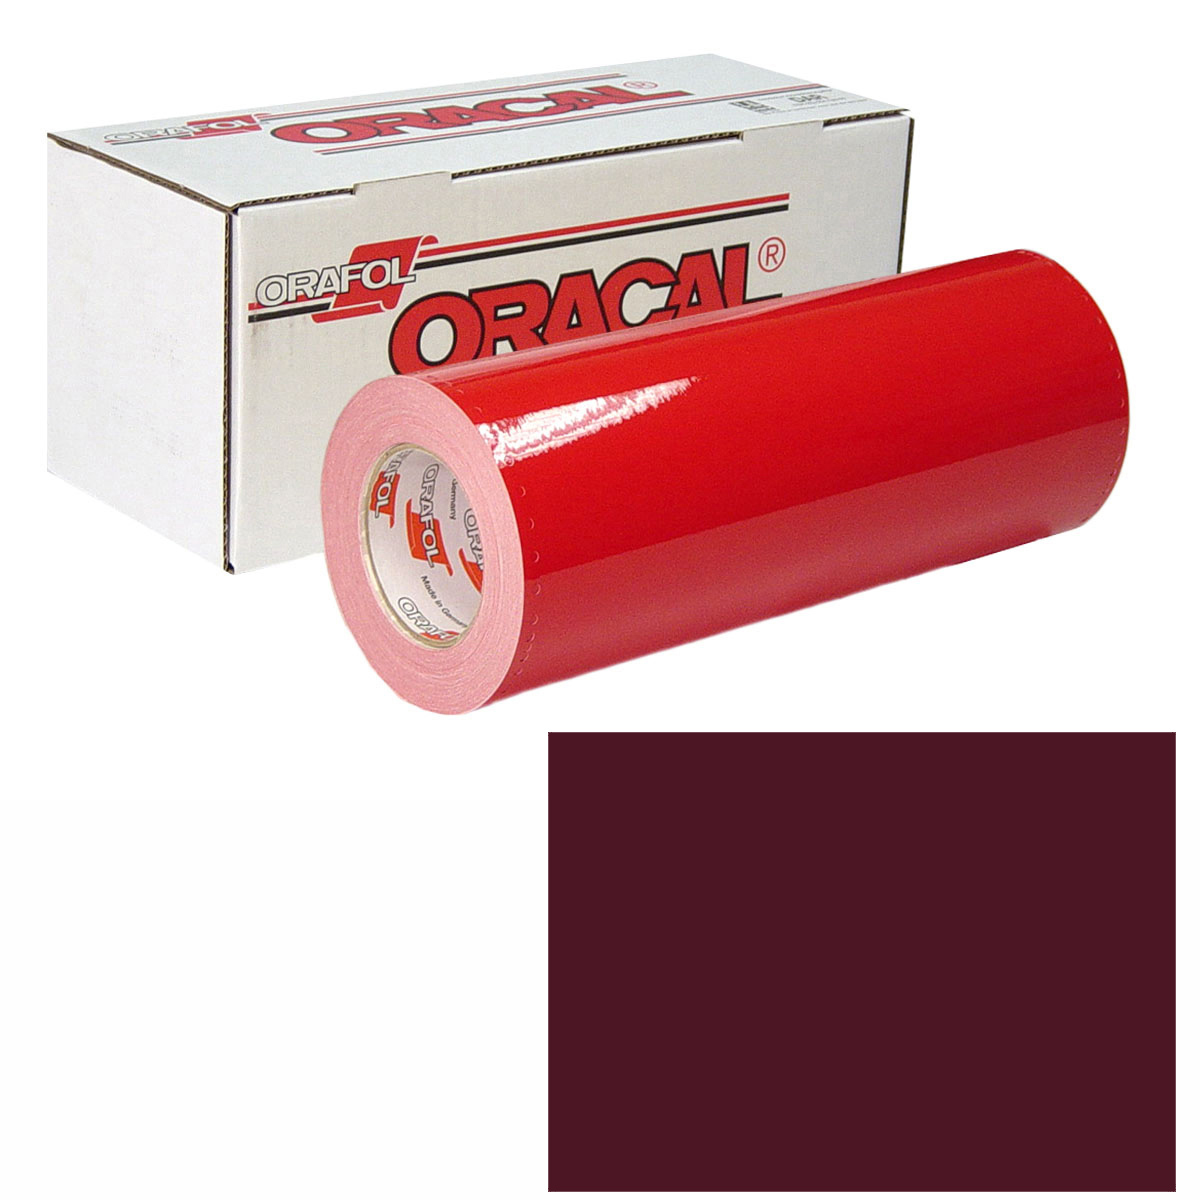 ORACAL 951 30In X 50Yd 340 Chestnut